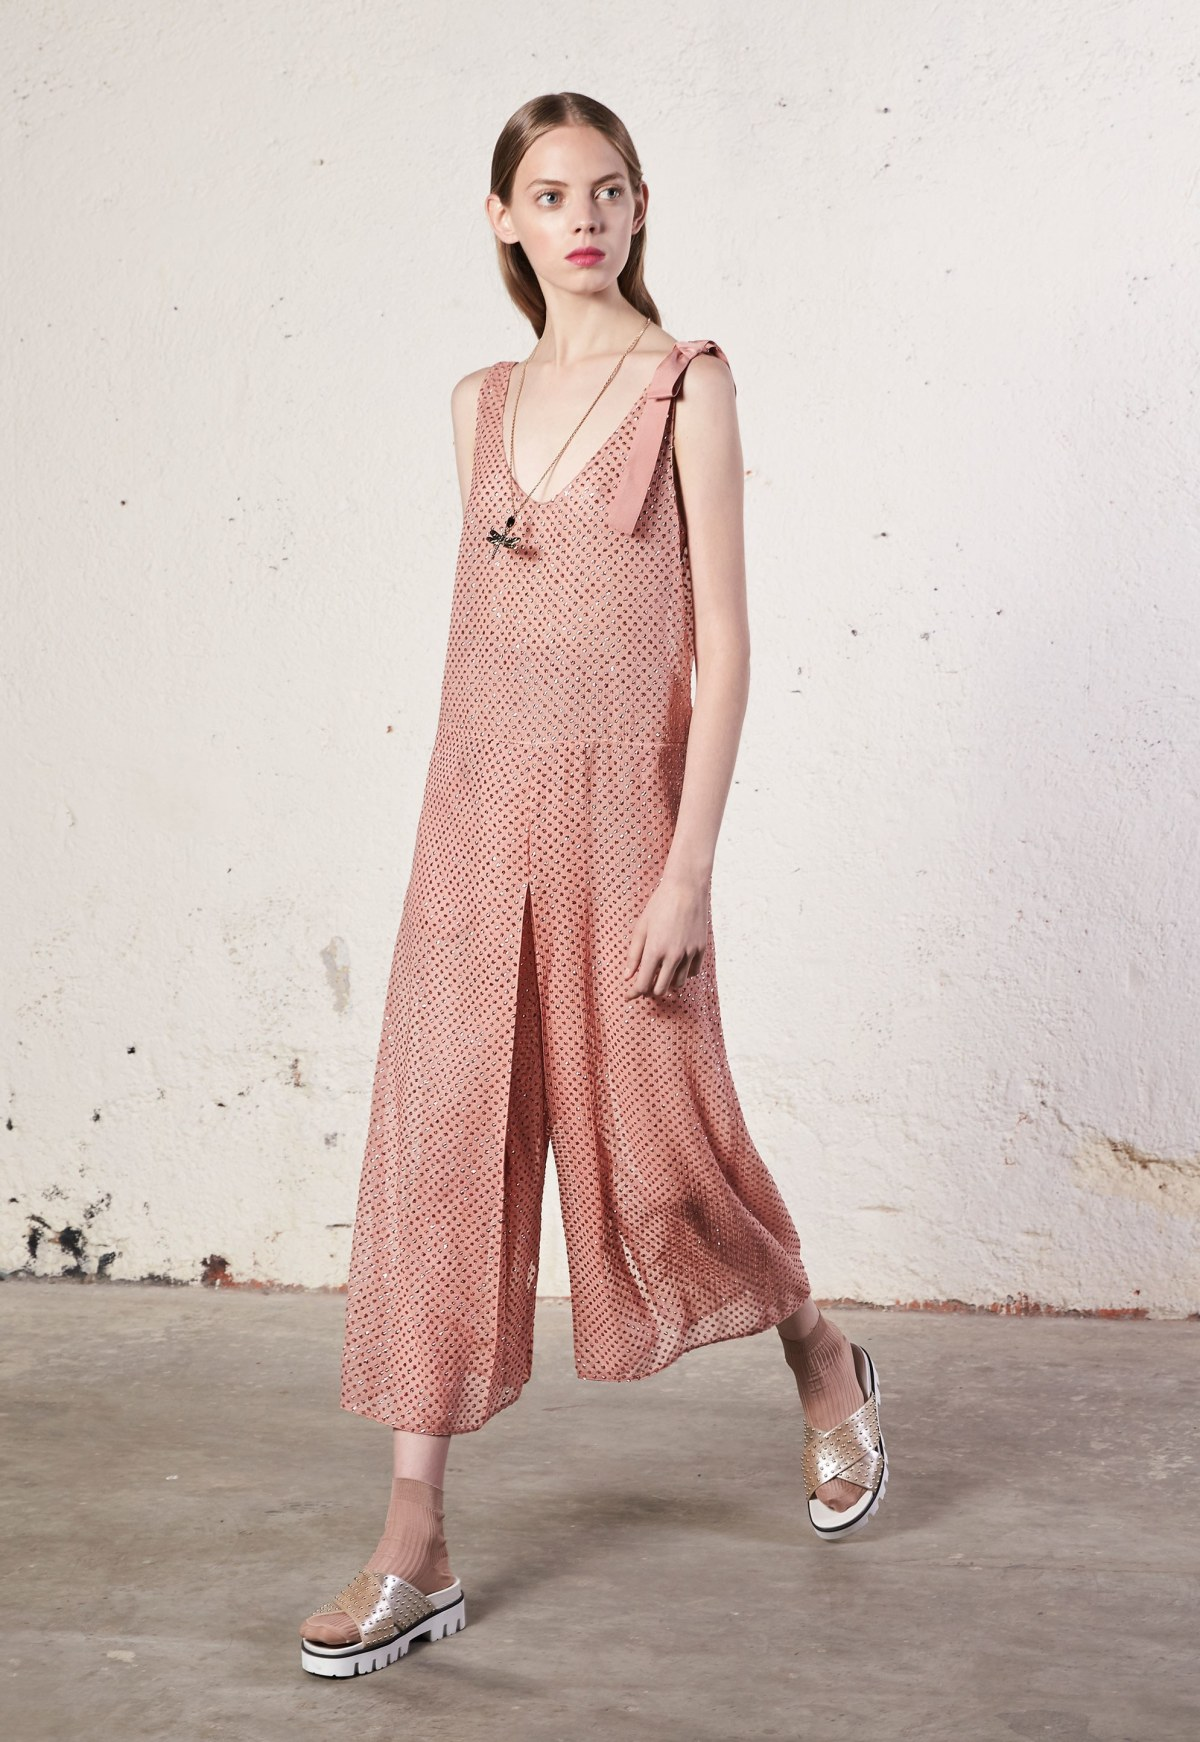 Red Valentino Resort 2018 Lookbook - The Impression ...